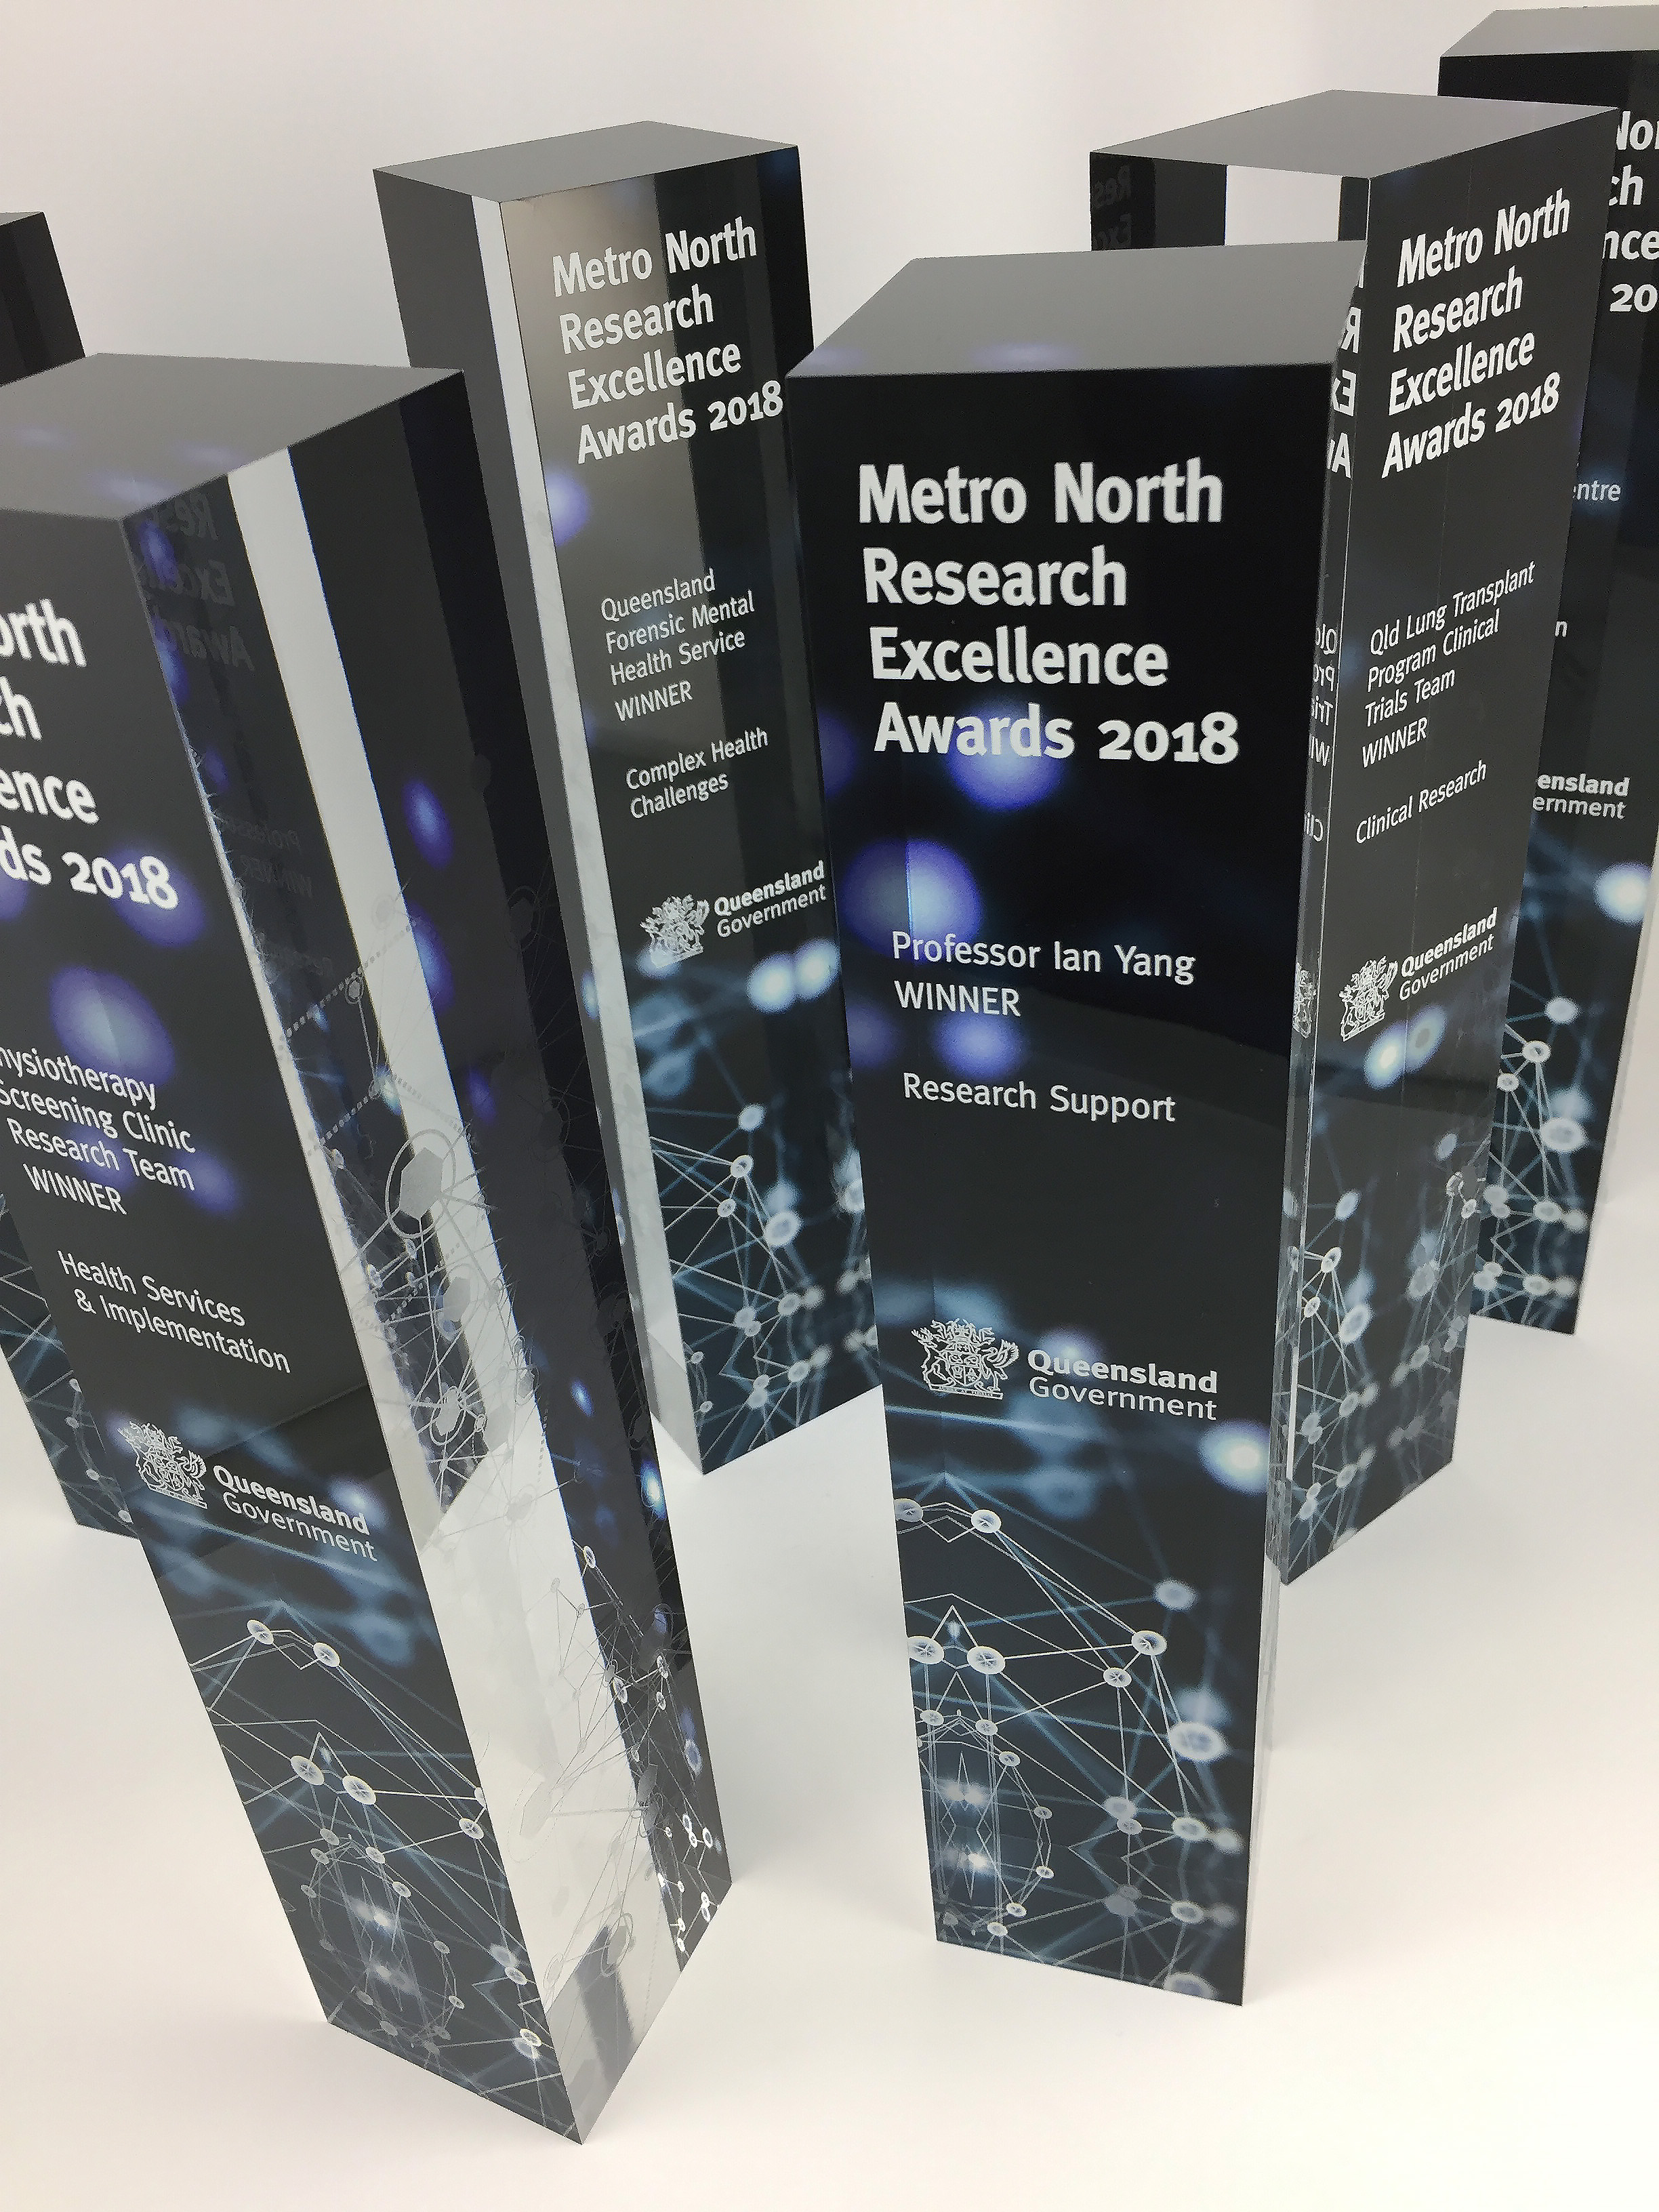 metro-north-research-excellence-awards-2018-03.jpg